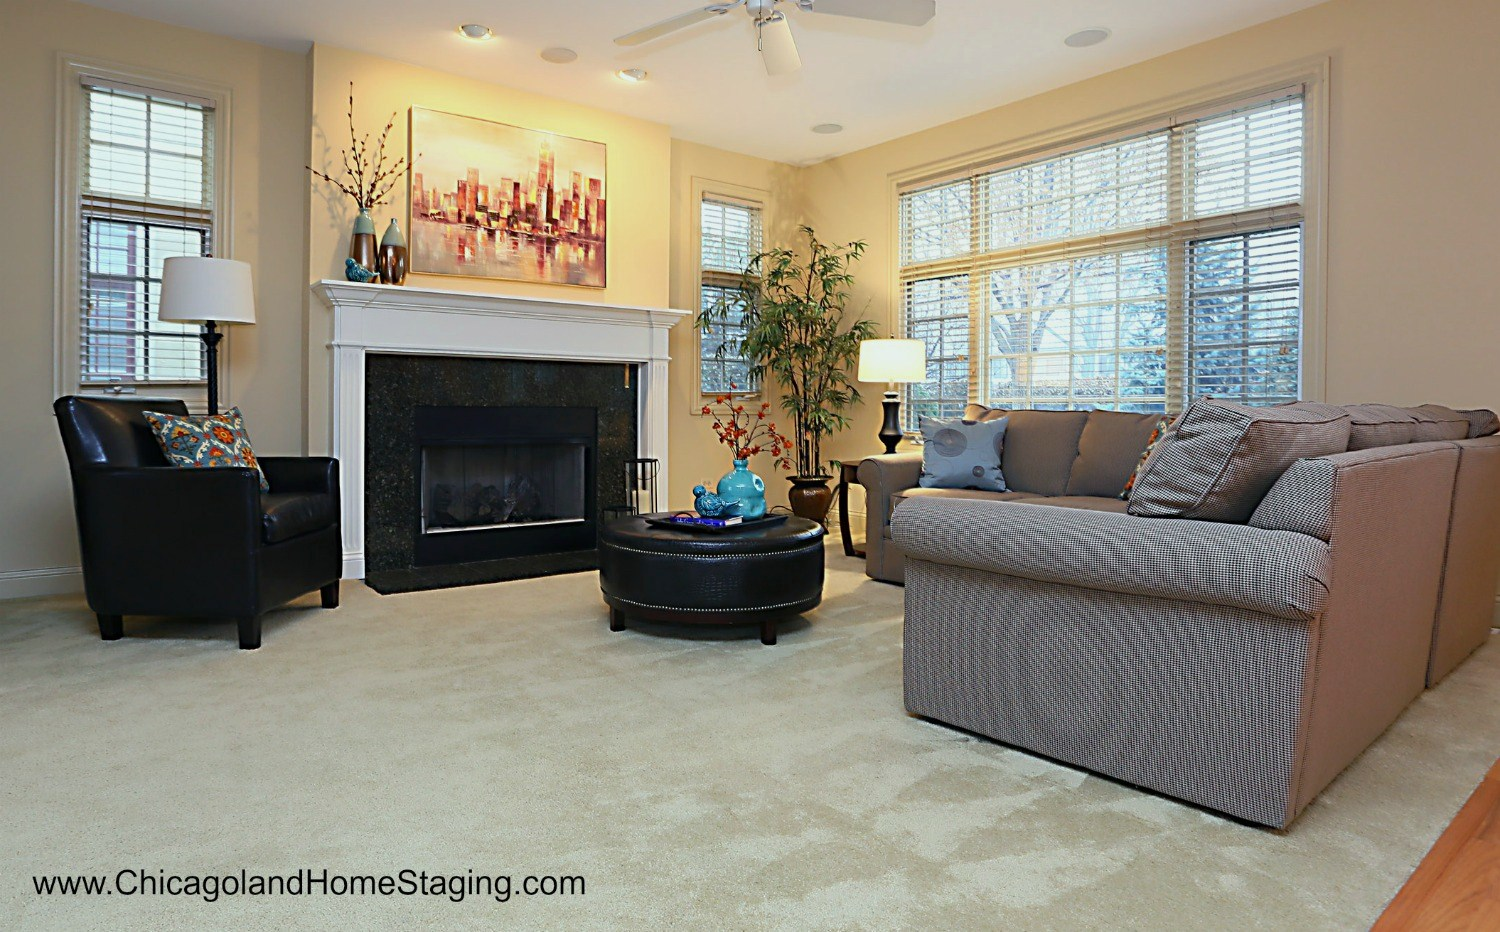 Home Staging Tips: Furniture doesn't belong shoved up against the walls.